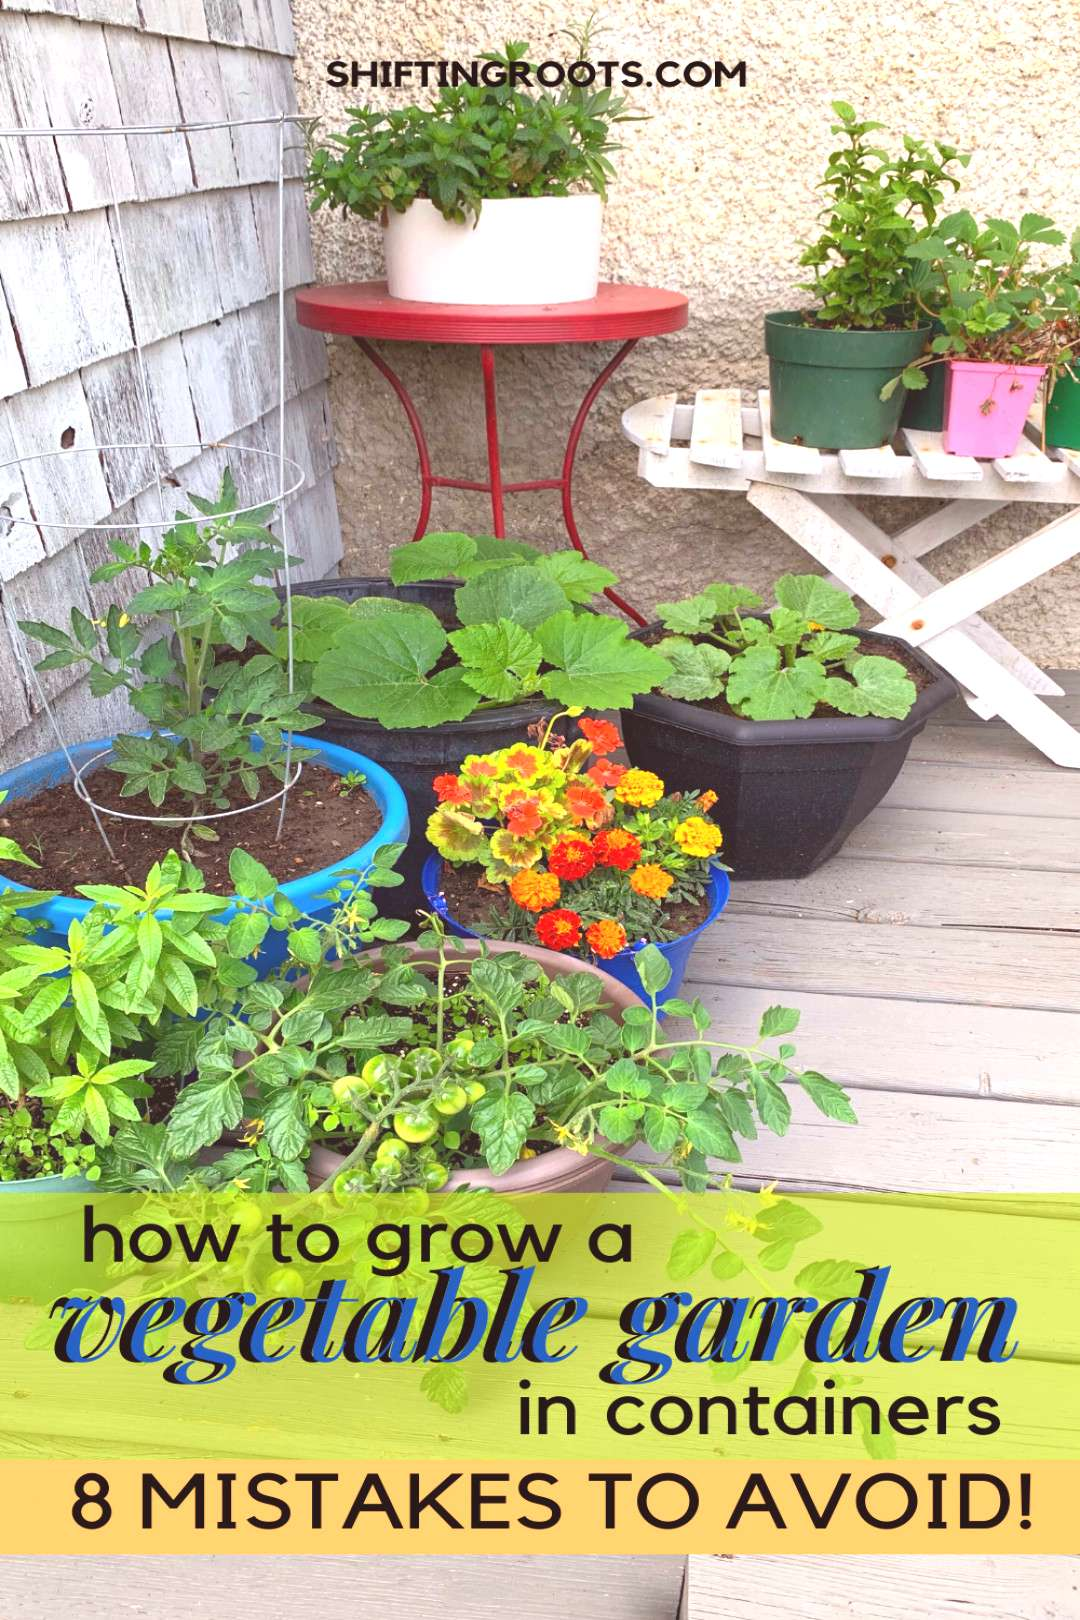 Avoid These 8 Mistakes for a Better Vegetable Container Garden You can grow a vegetable garden even